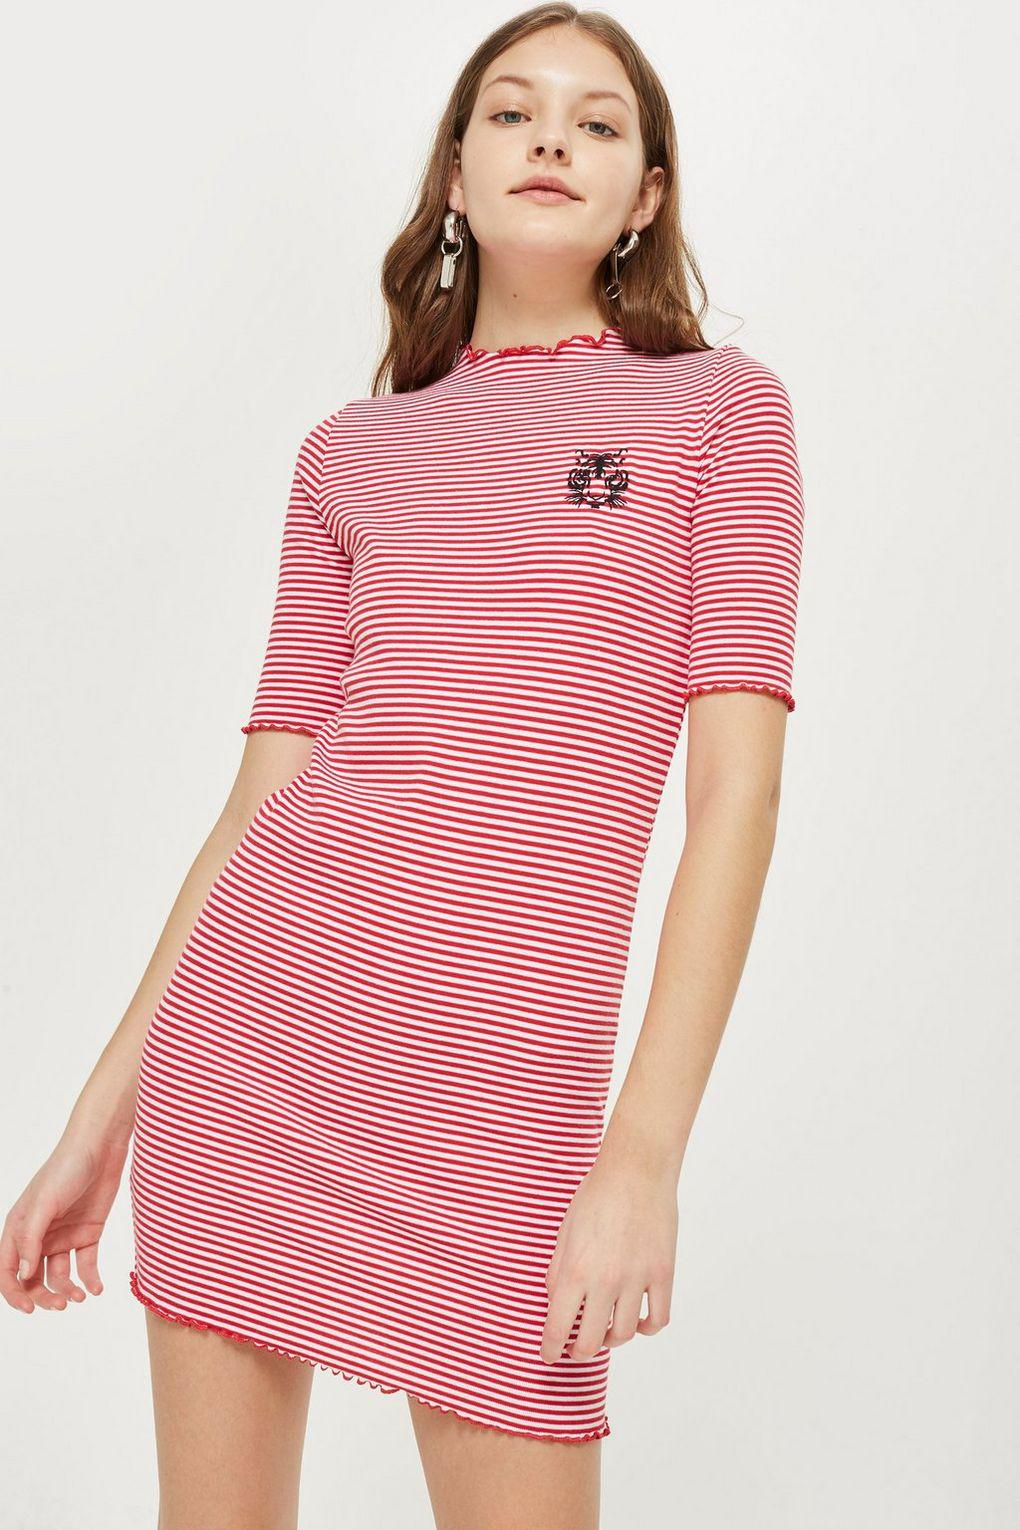 Buy Cheap 100% Authentic Low Price Fee Shipping For Sale Topshop Womens Petite Lettuce Edge Bodycon Dress - Quality From China Cheap Clearance Clearance 6R5Bk3j